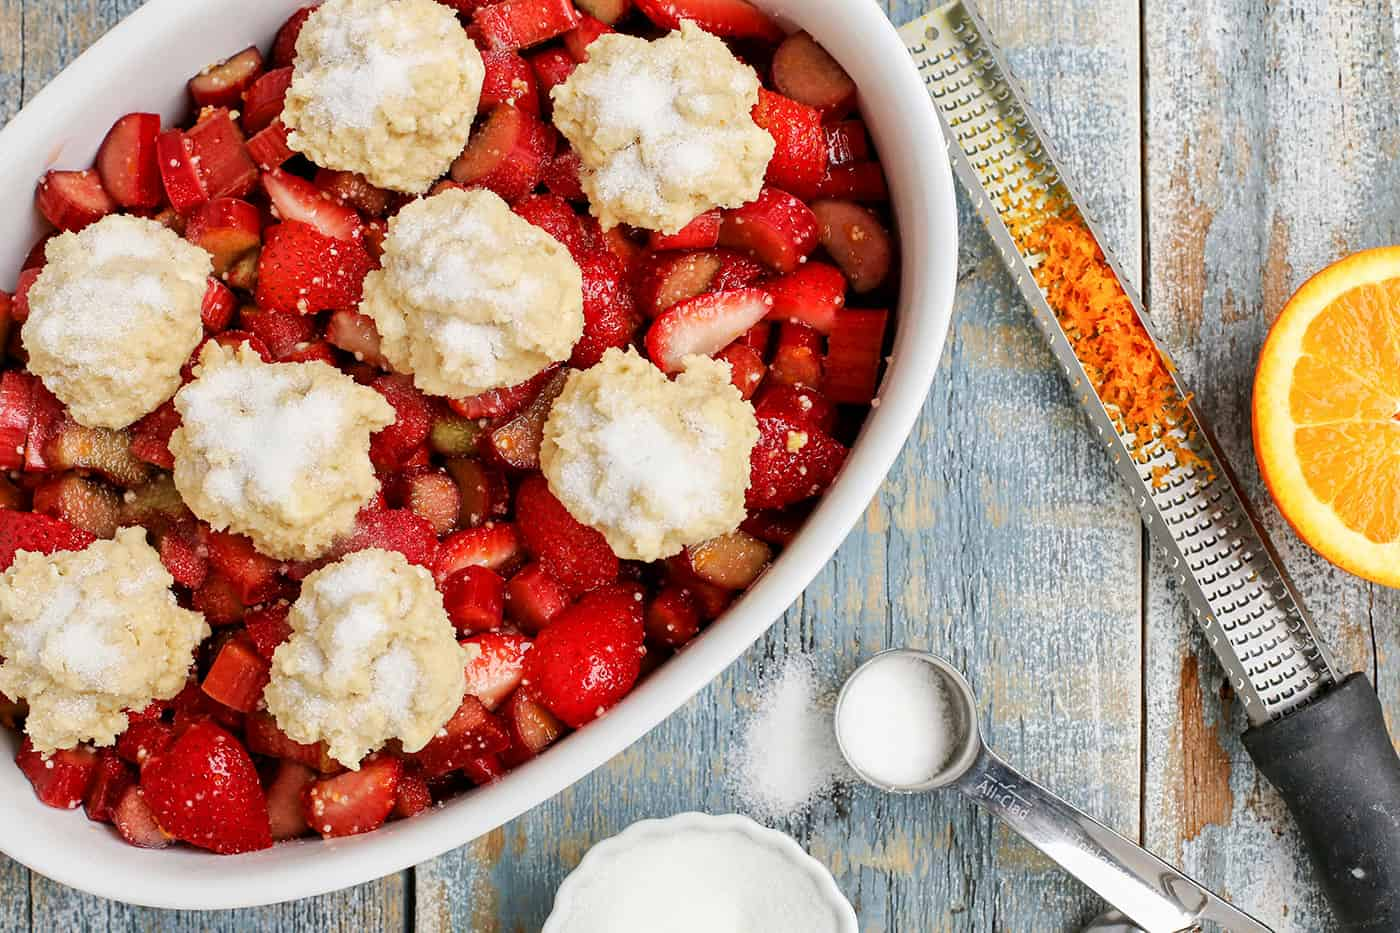 Unbaked Strawberry Rhubarb Cobbler in an oval baking dish next to ingredients